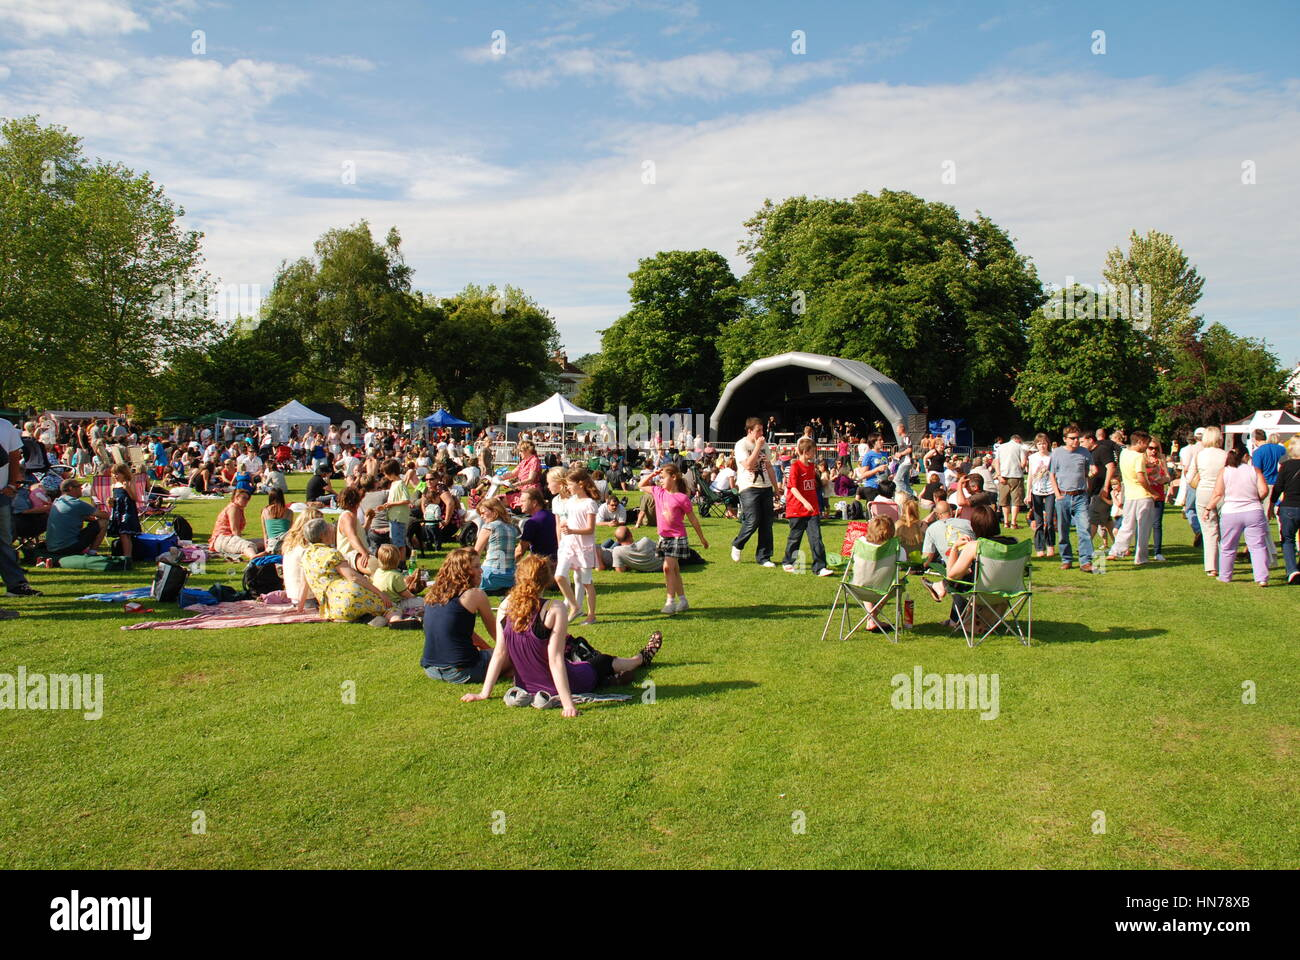 The audience sit on the grass at the annual Tentertainment music festival at Tenterden in Kent, England on June - Stock Image